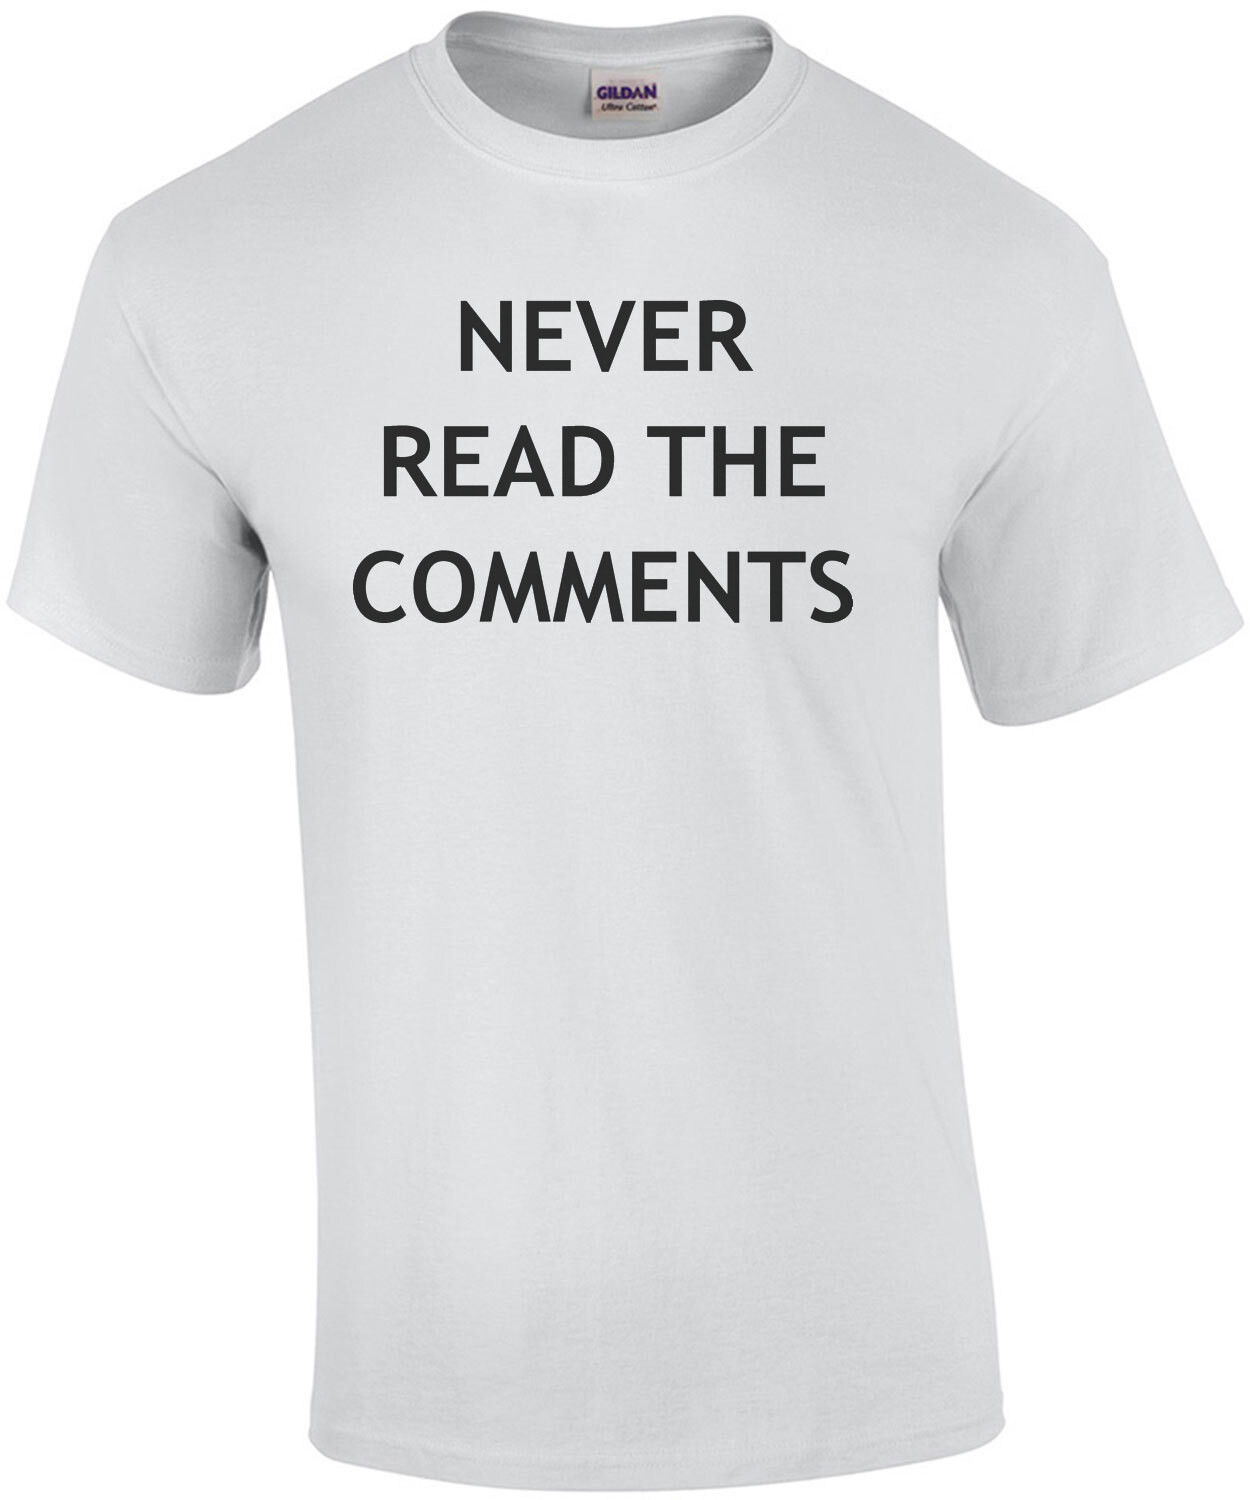 Never read the comments - funny t-shirt